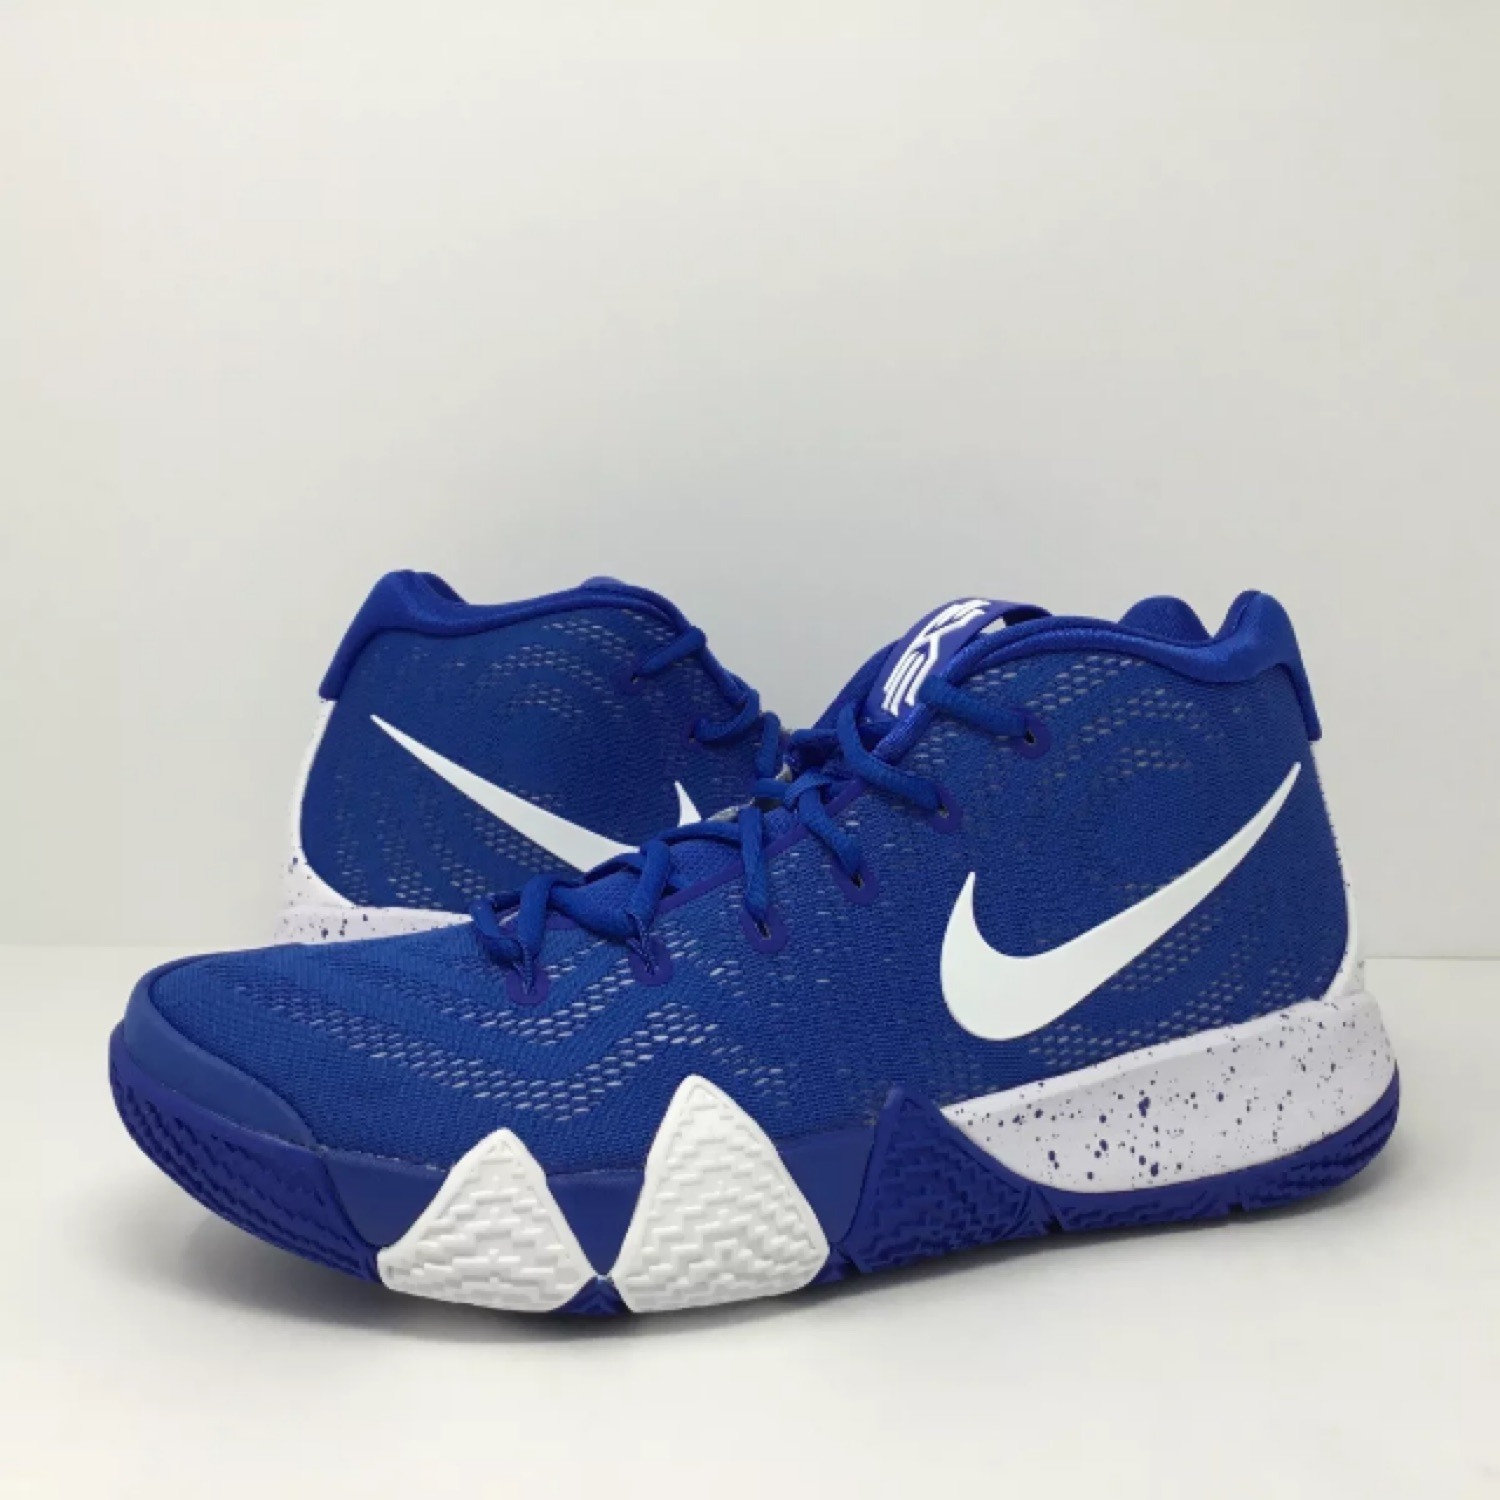 outlet store 4ab29 24435 Nike Kyrie 4 Team Game Royal Blue Size 11 Ds